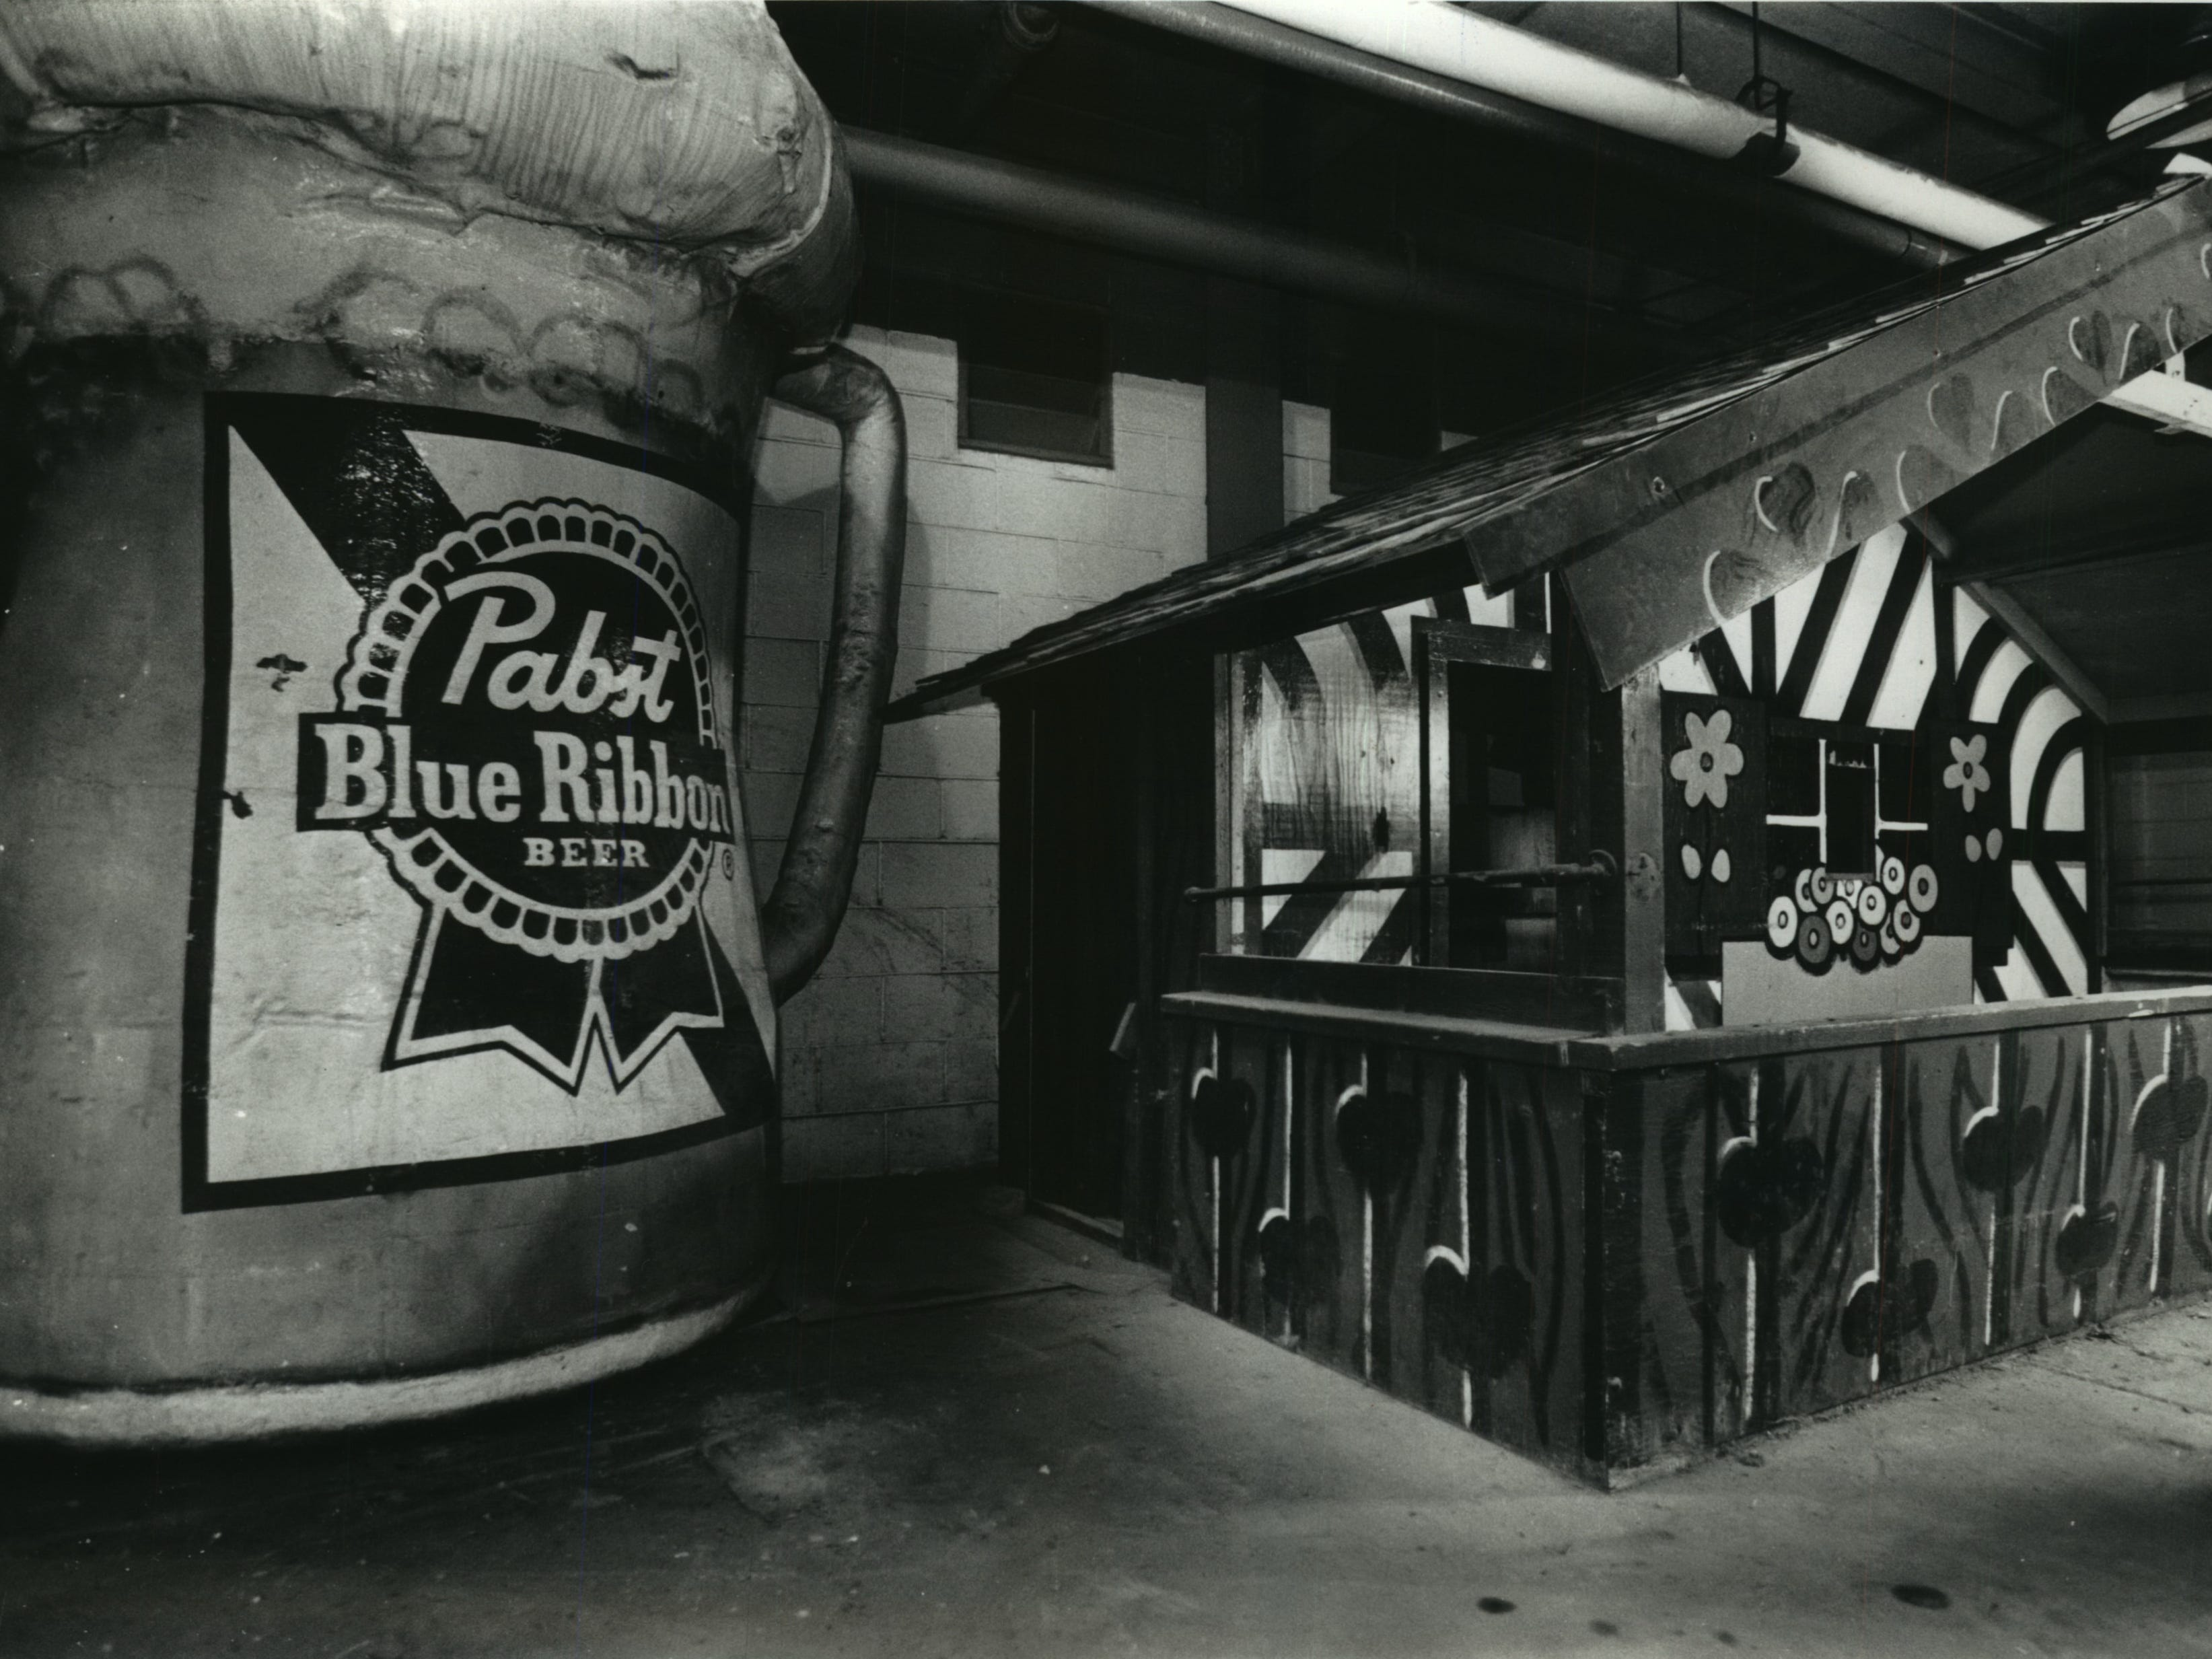 Bernie Brewer's old center field home was stored, still intact, in the recesses of County Stadium after it was removed from the center-field bleachers after the 1984 season. This photo was published in the July 8, 1992, Milwaukee Journal, when the Milwaukee Brewers began talking about bringing the mug and chalet back.